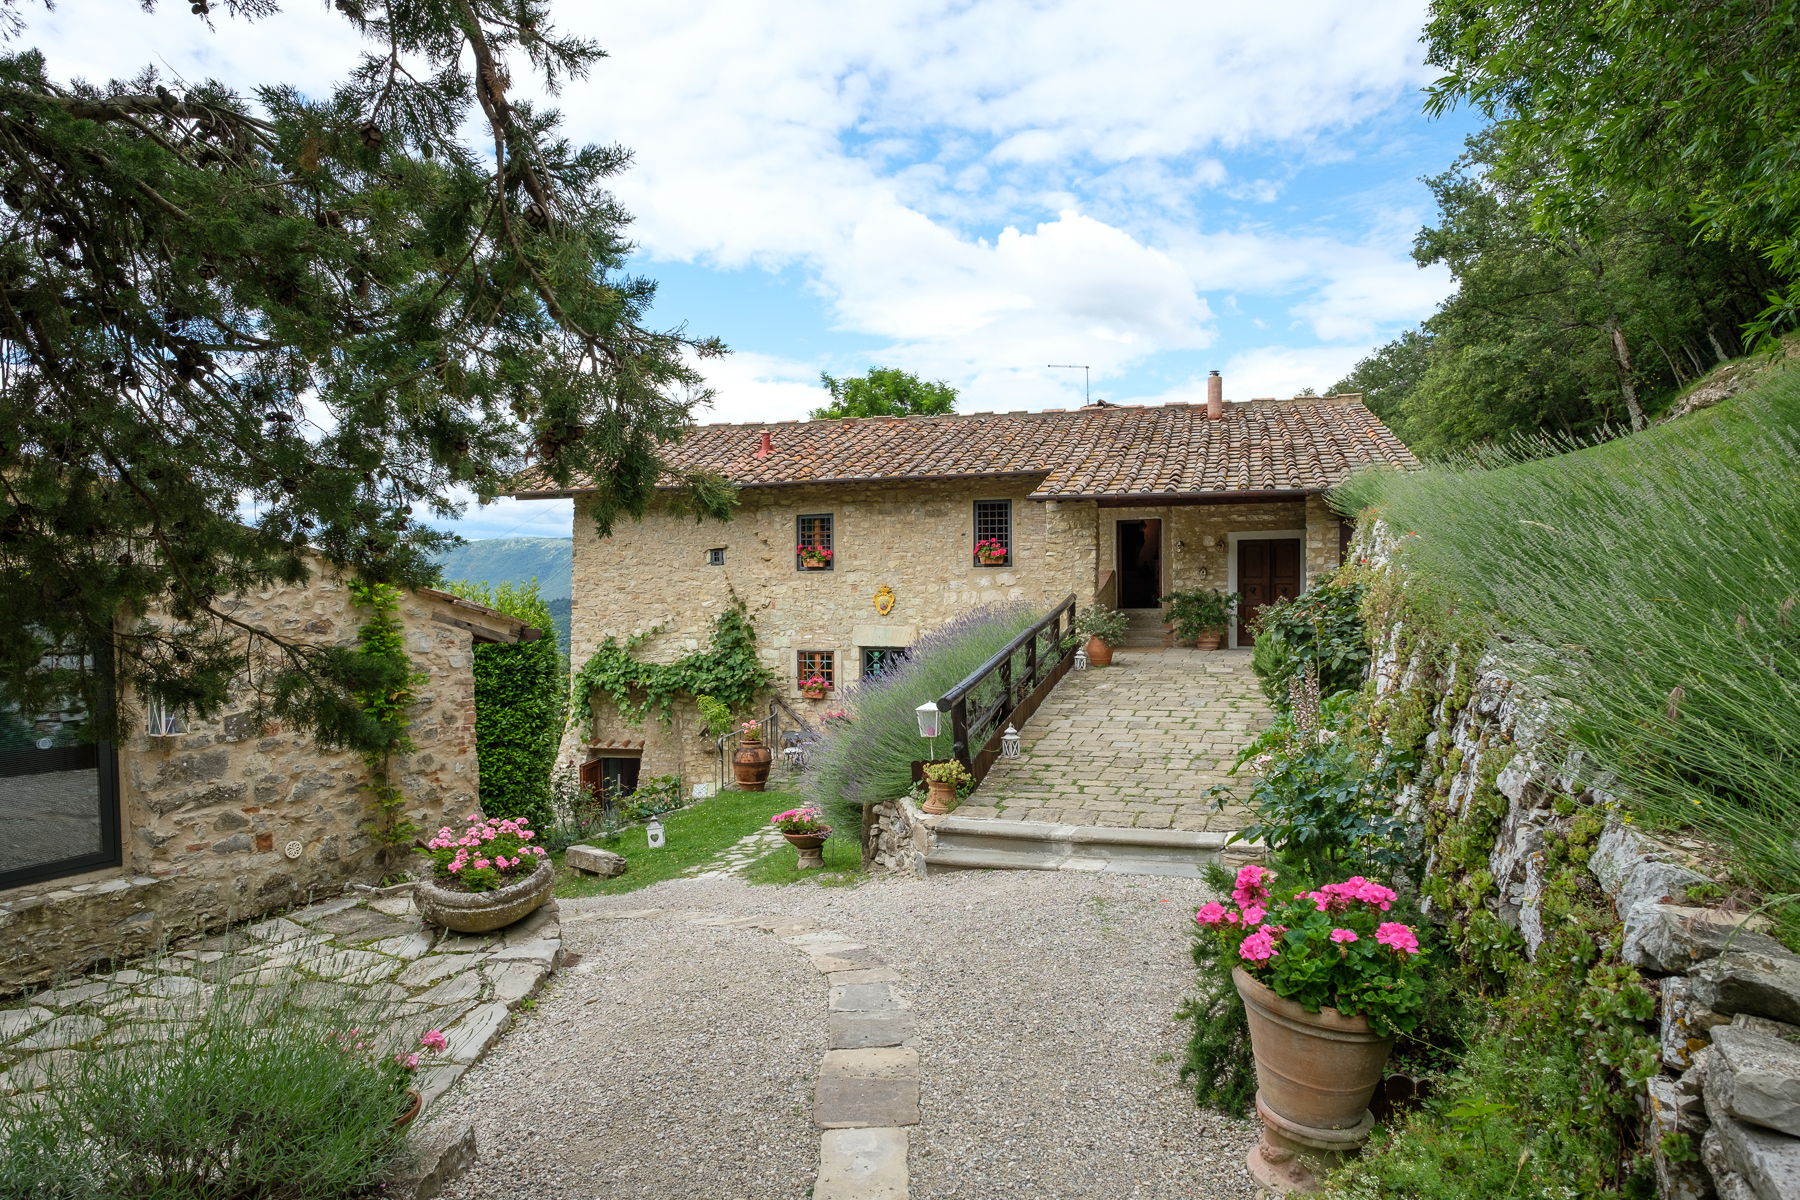 Additional photo for property listing at Antique convent on the hills of Florence Via di Vara e Lonciano Sesto Fiorentino, Florence 50019 Italien